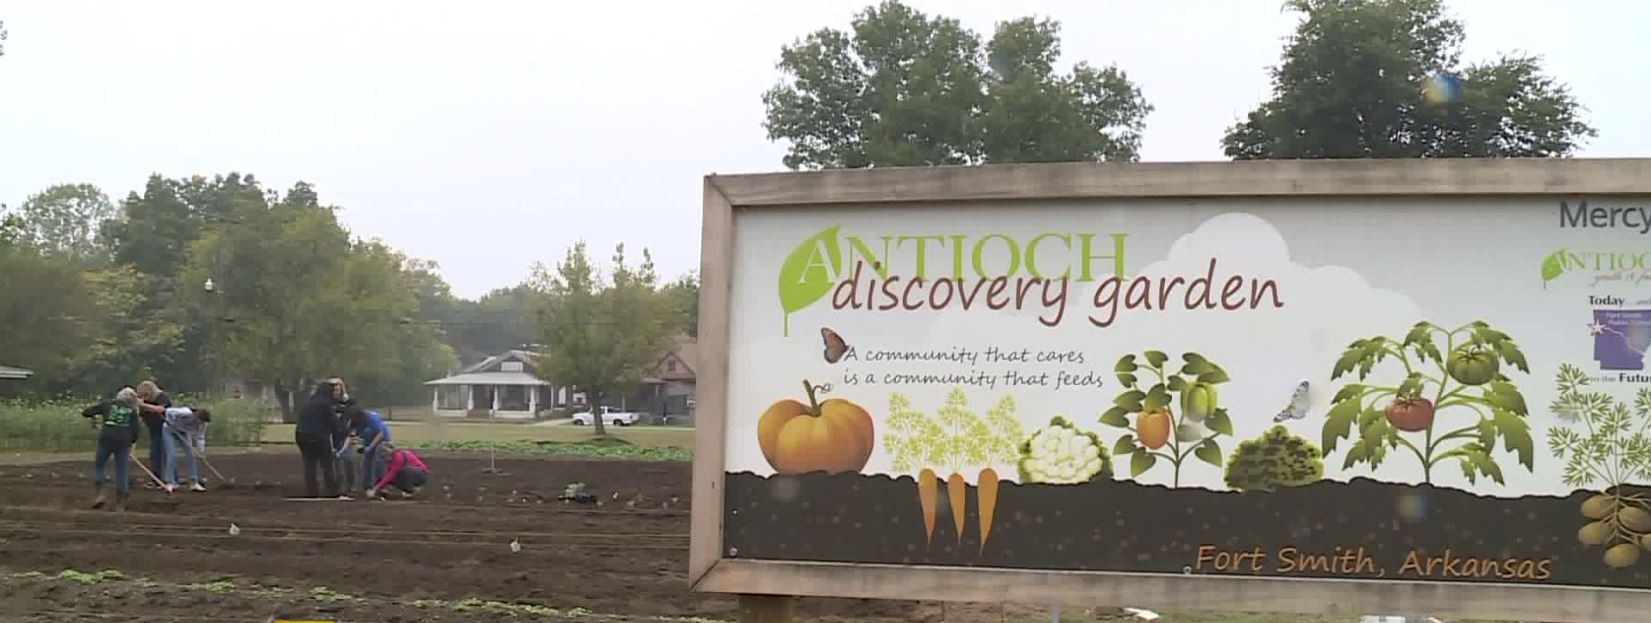 Antioch Discovery Garden Ft. Smith